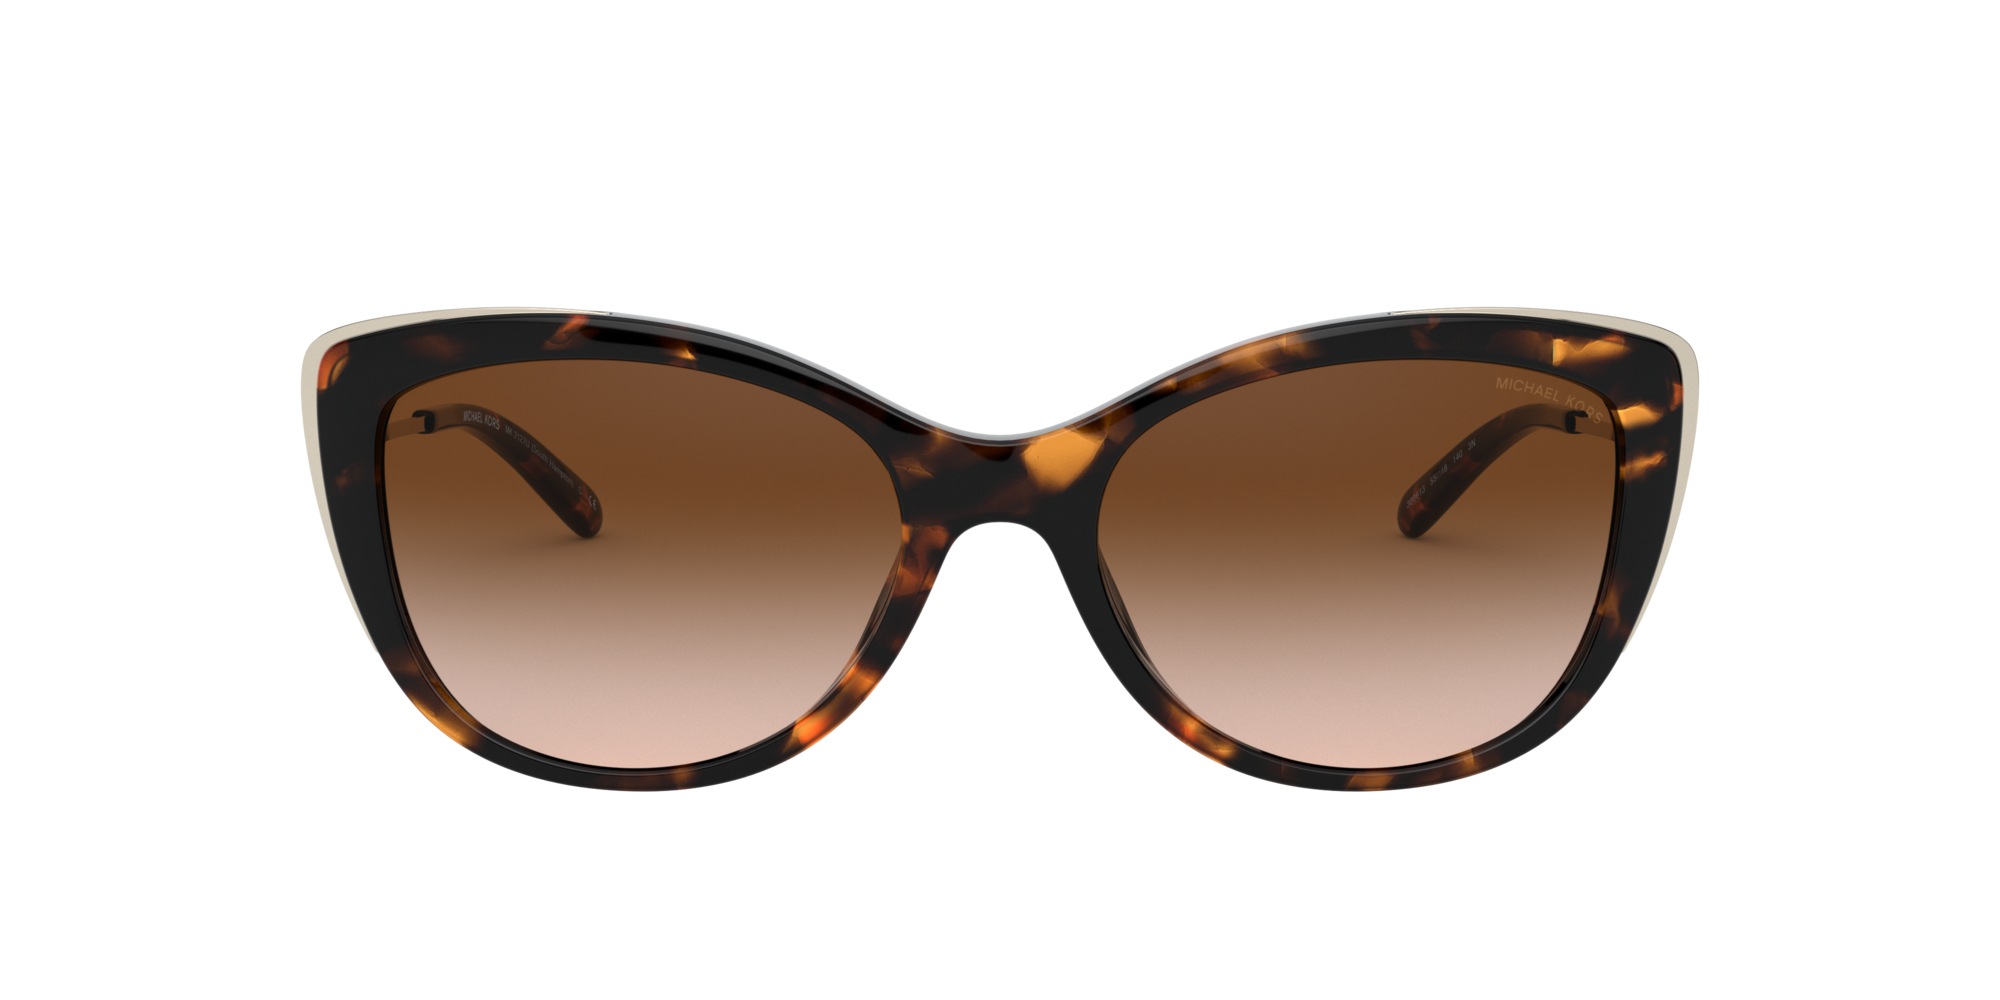 Image for SOUTH HAMPTON from LensCrafters   Glasses, Prescription Glasses Online, Eyewear